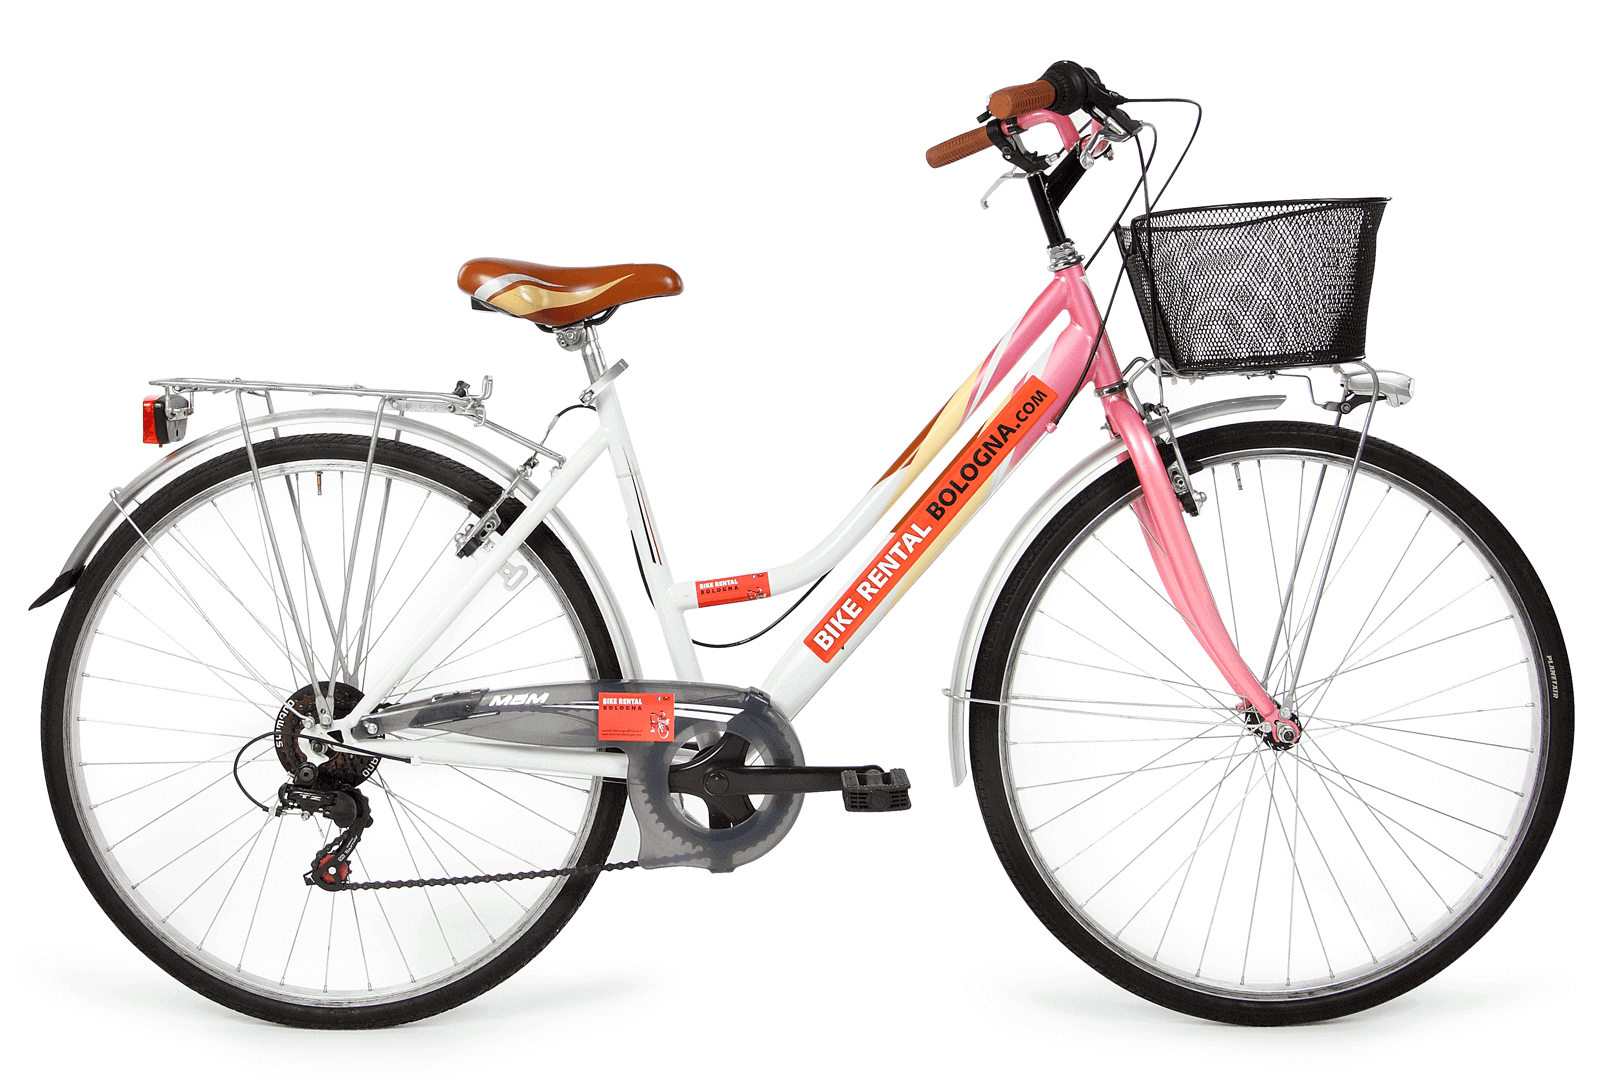 city-bike standard, female version